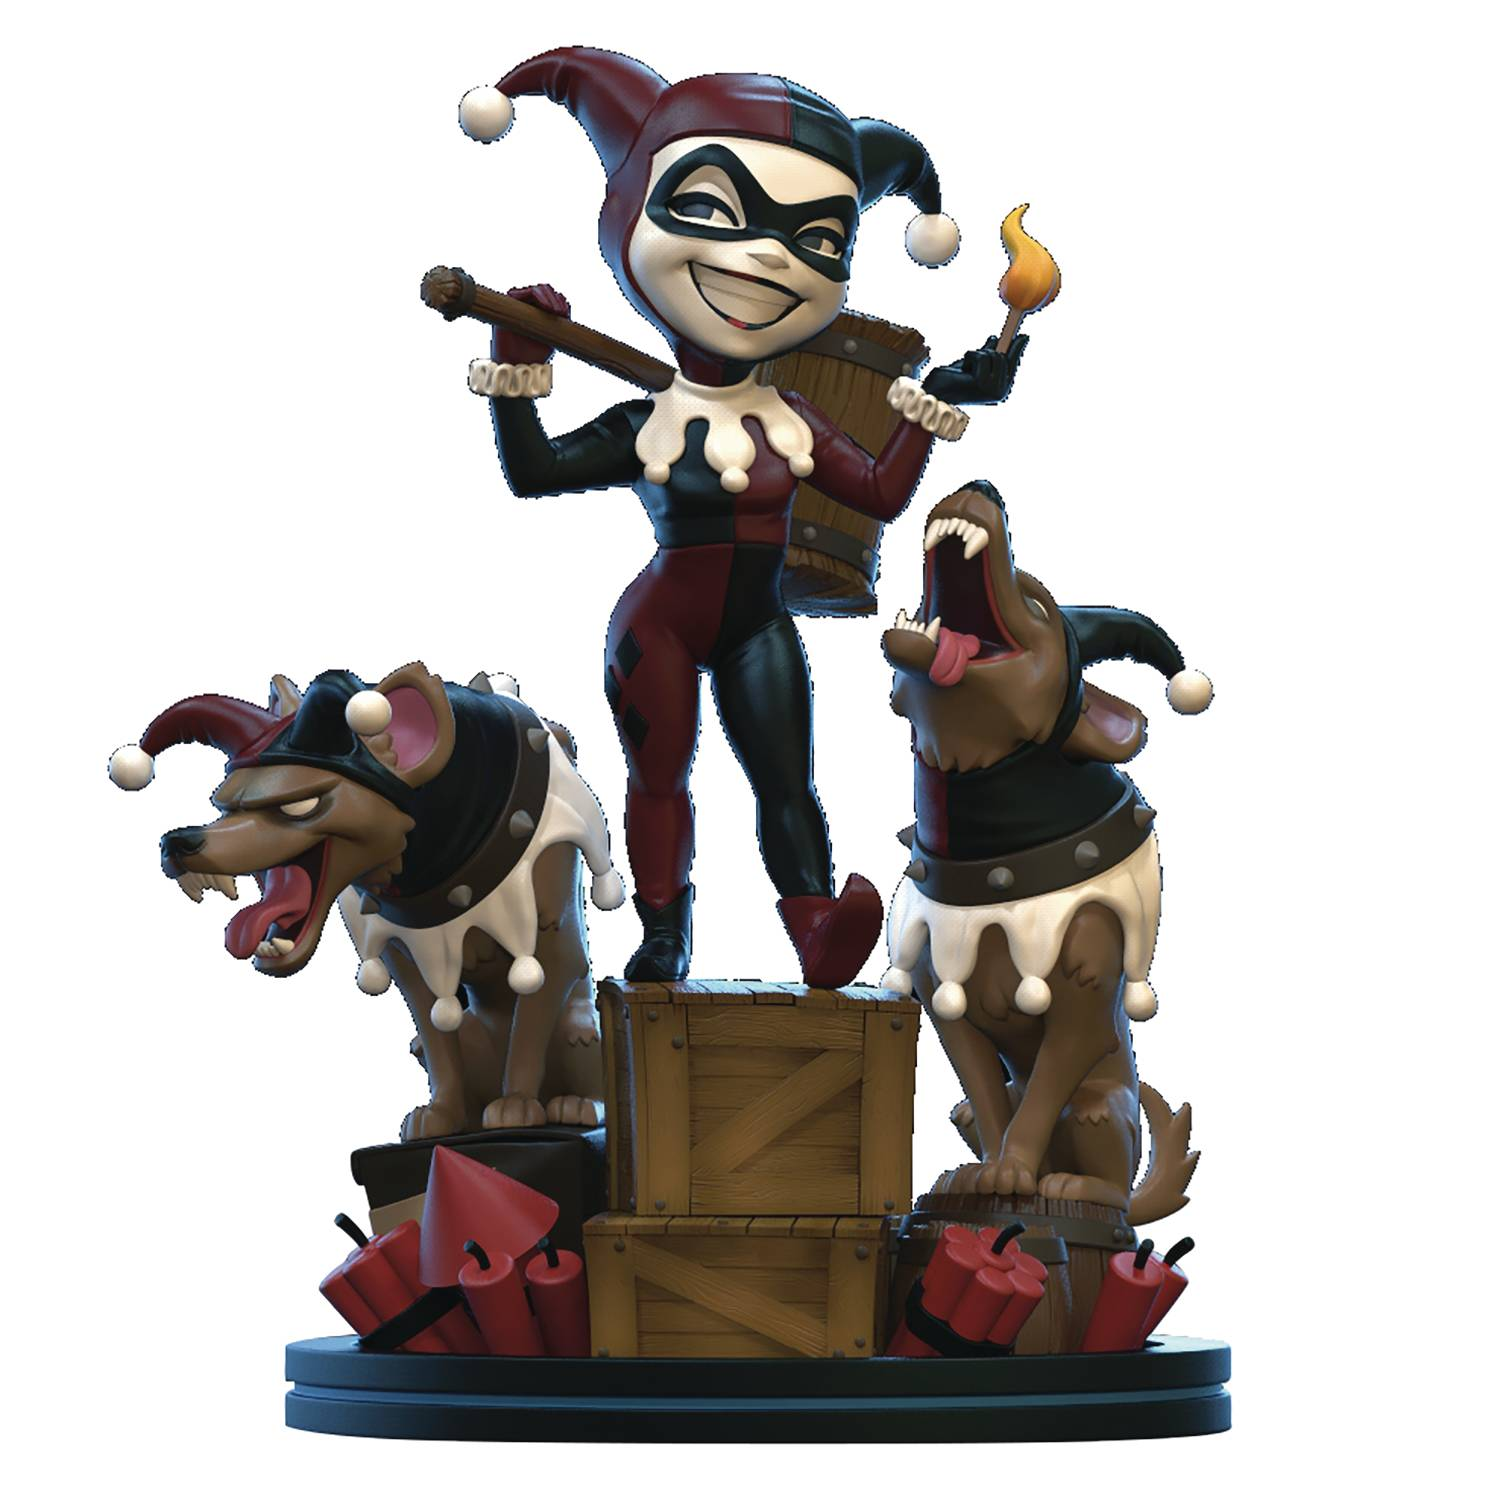 DC HEROES HARLEY QUINN Q-FIG REMASTERED DIORAMA FIGURE